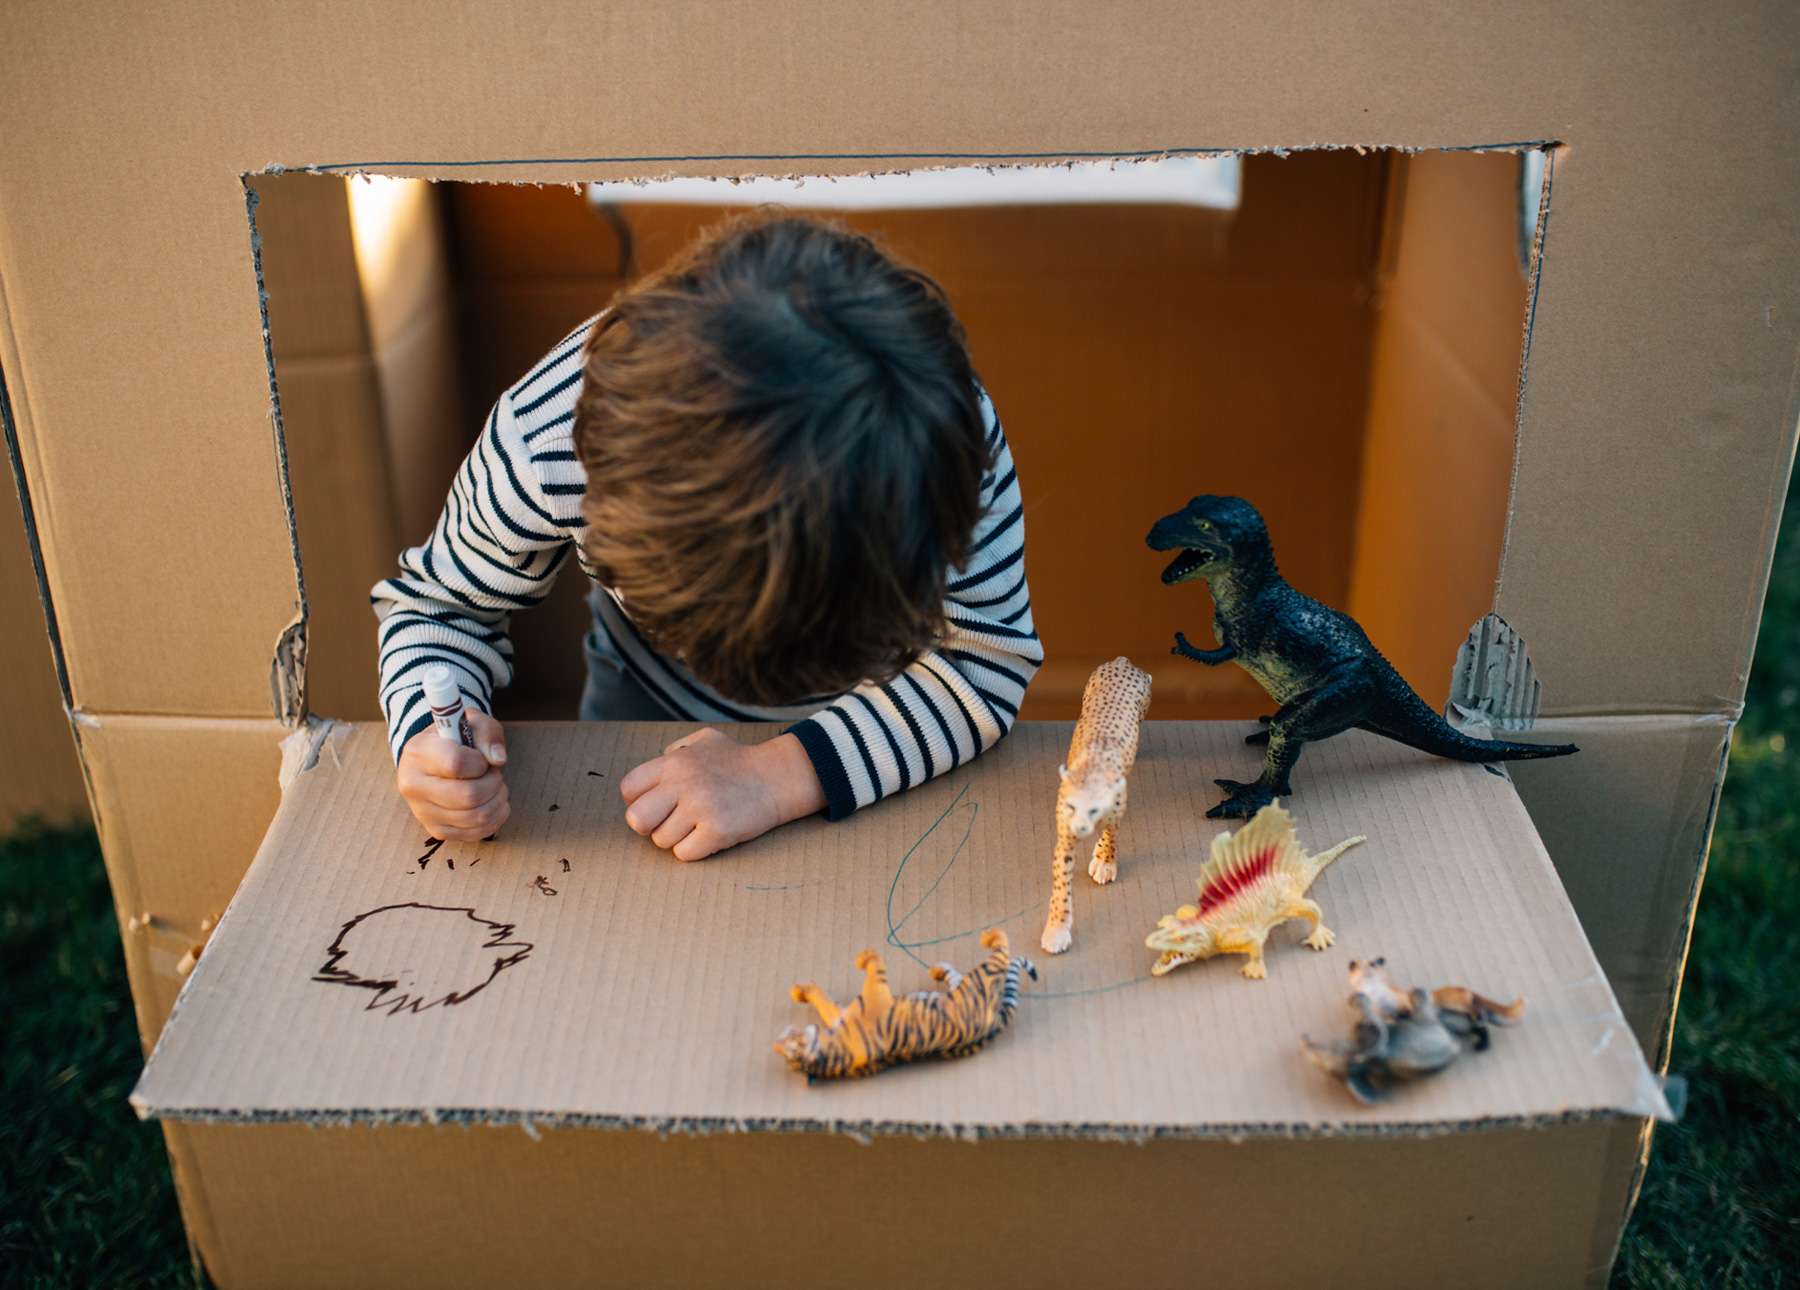 A child plays with dinosaurs on the window ledge of his cardboard box fort.